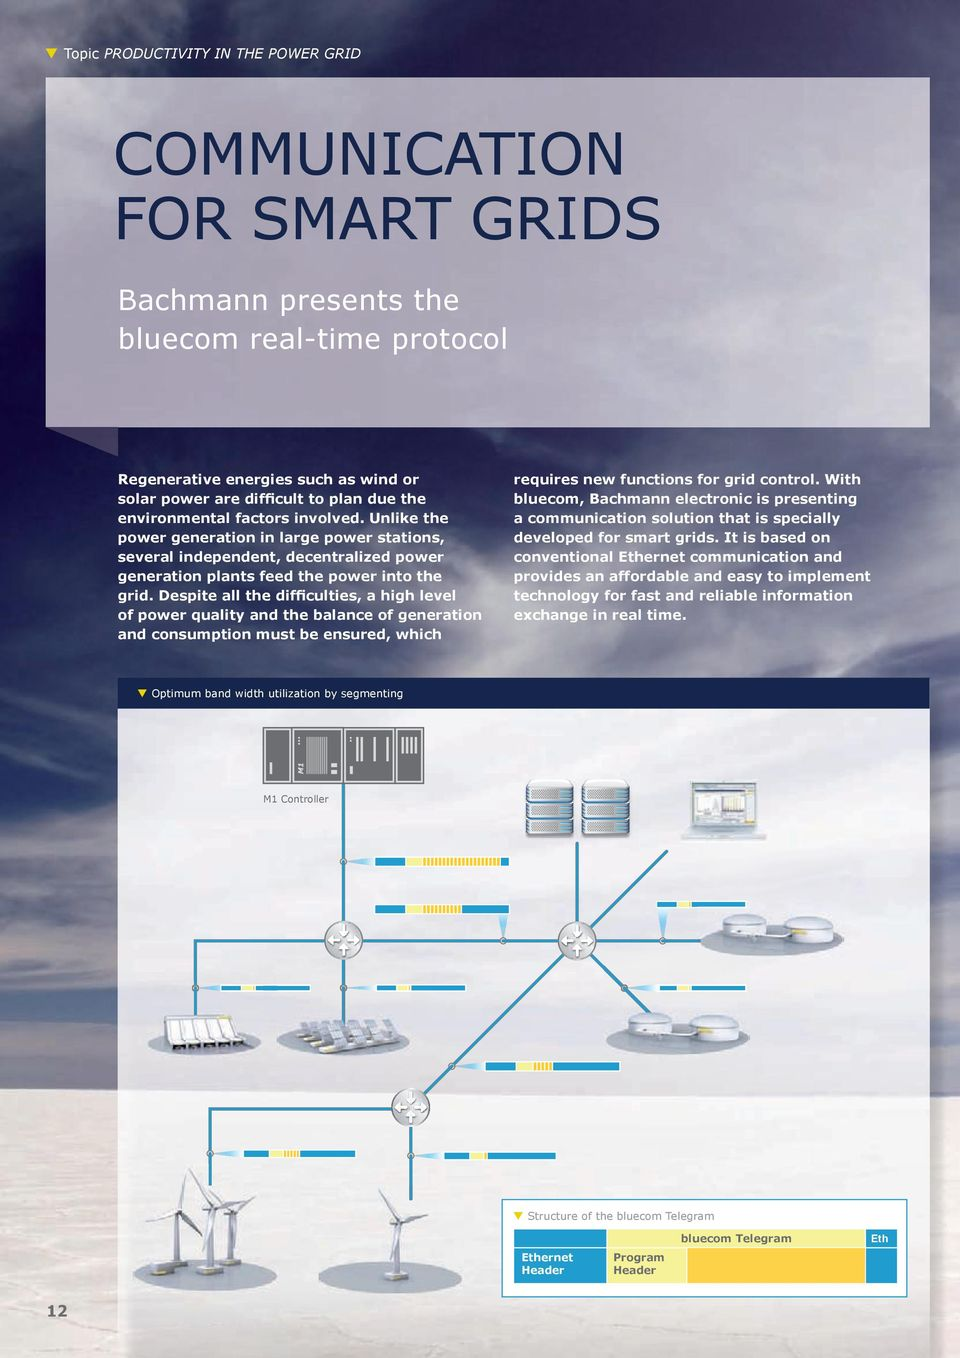 Despite all the difficulties, a high level of power quality and the balance of generation and consumption must be ensured, which requires new functions for grid control.